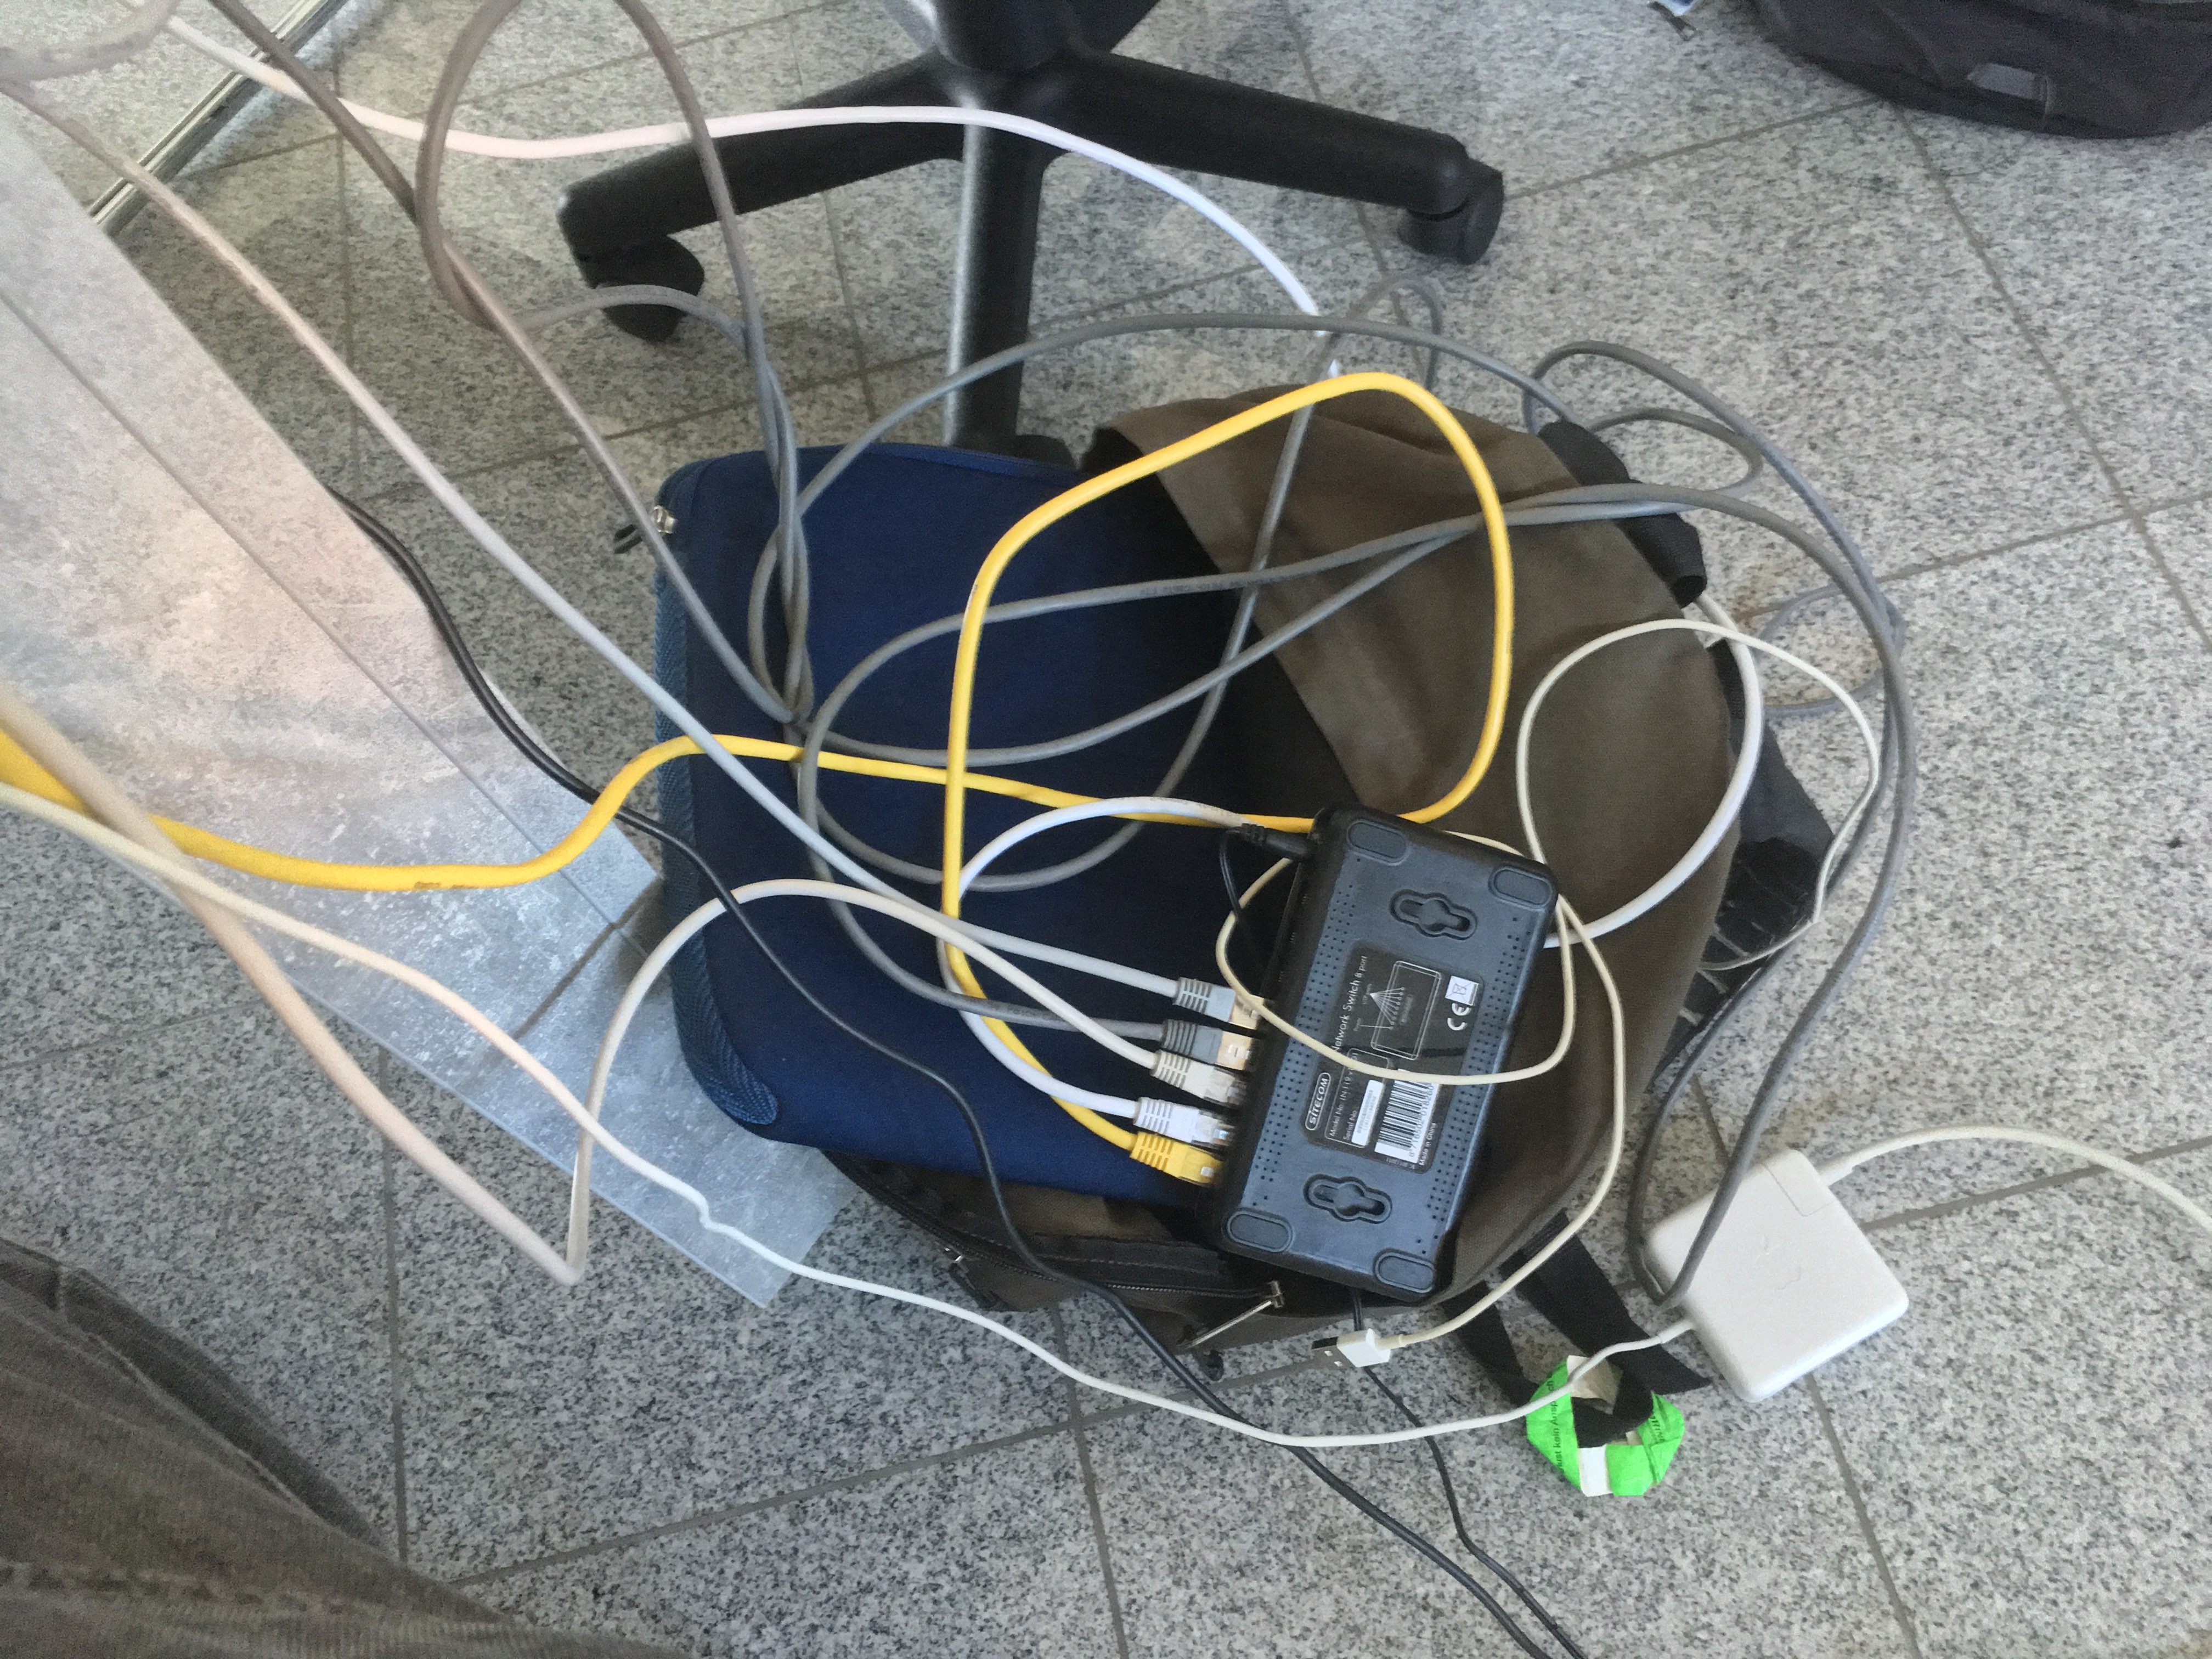 A bunch of network cables connected to a switch